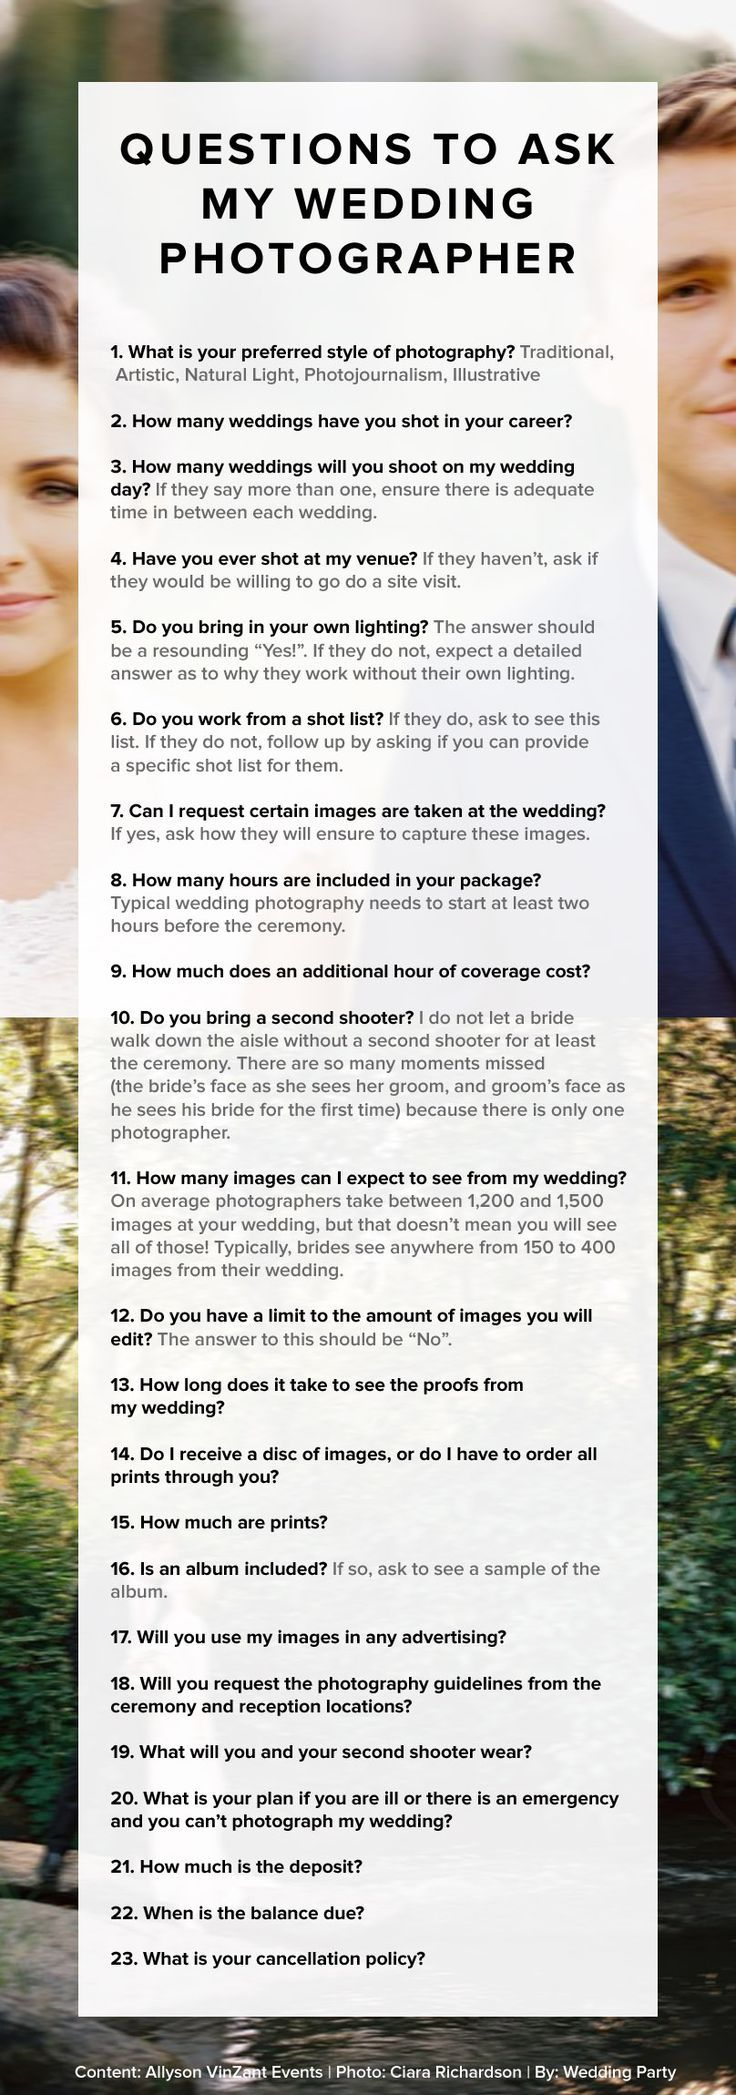 Questions your ask wedding photographer to